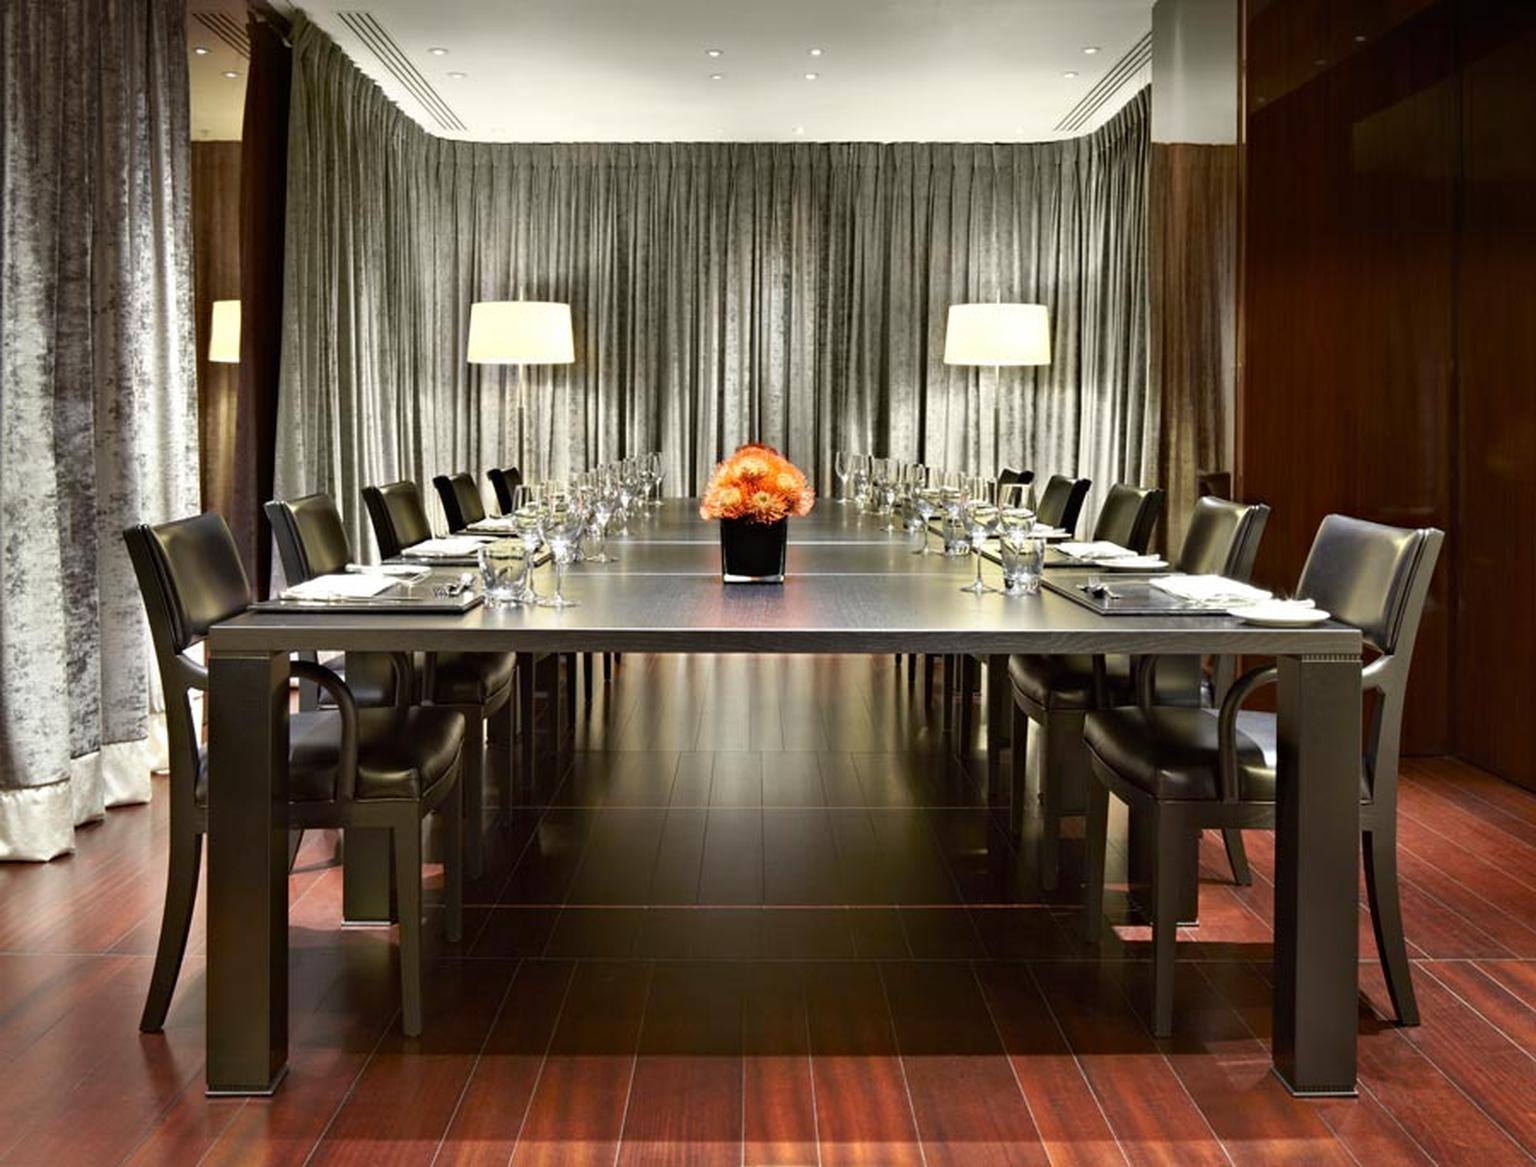 Bulgari-Hotel-Private-dininig-room.jpg